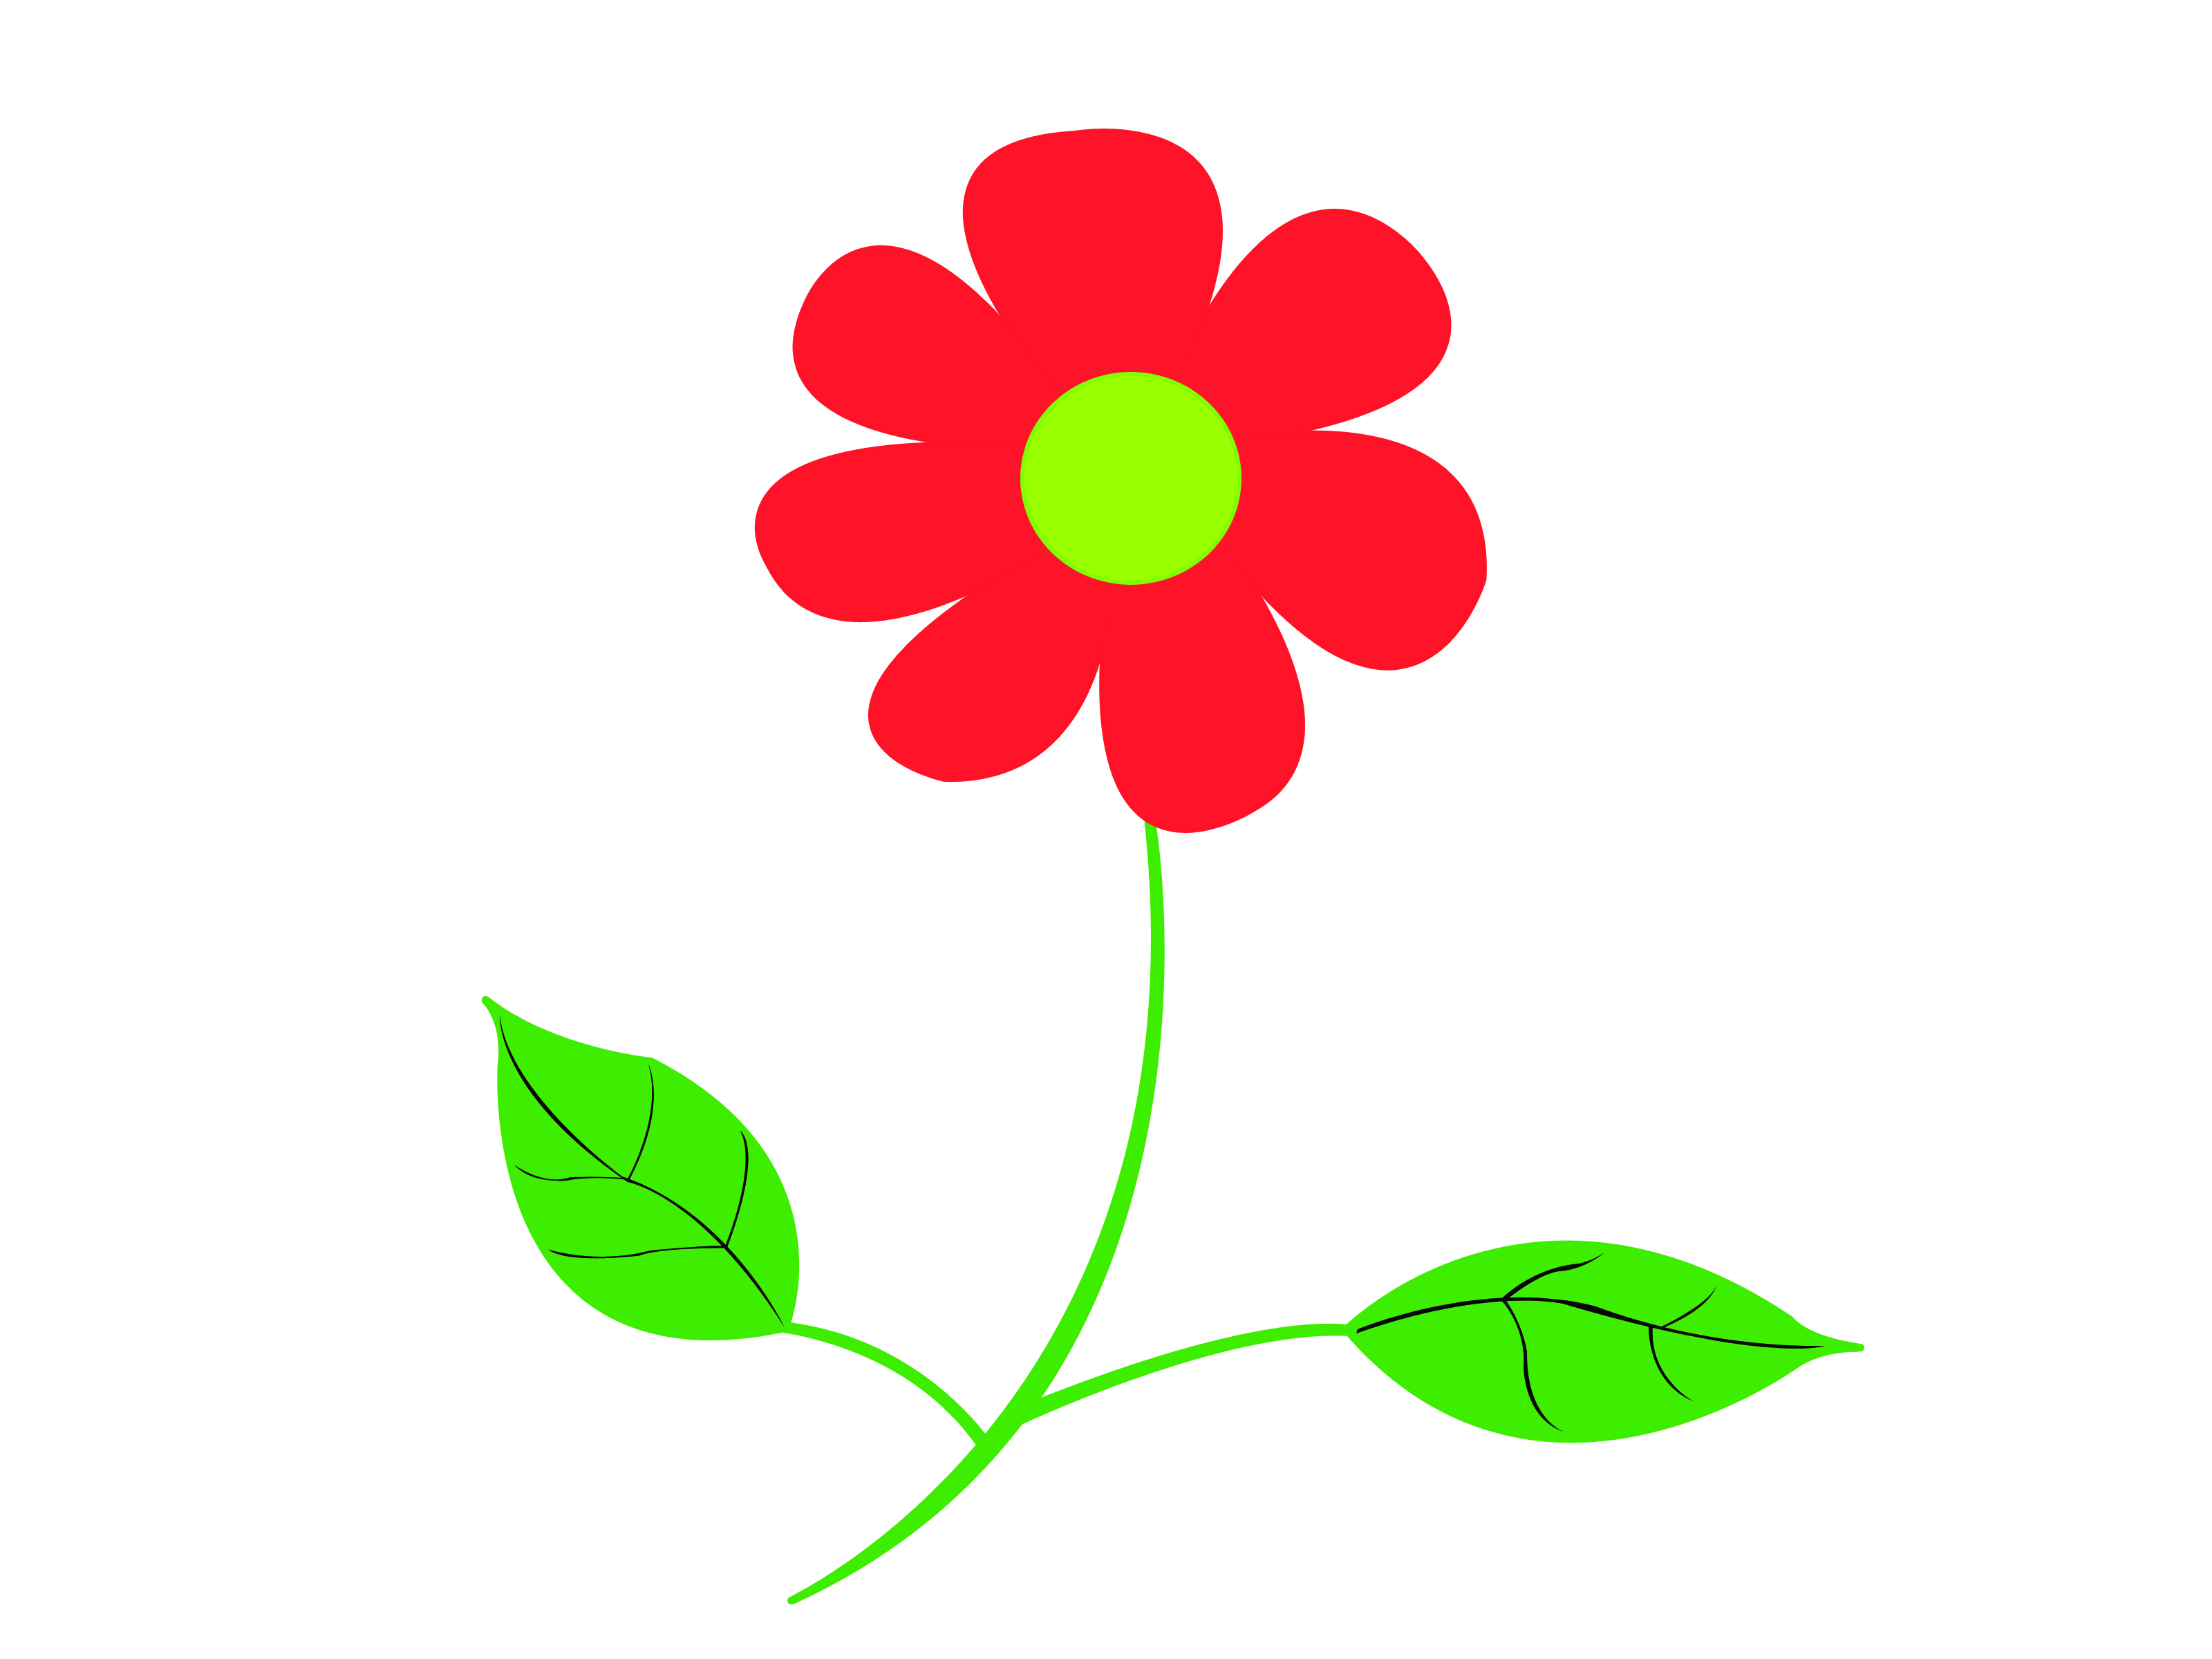 Flower drawing cartoon at free for for Drawings of cartoon flowers